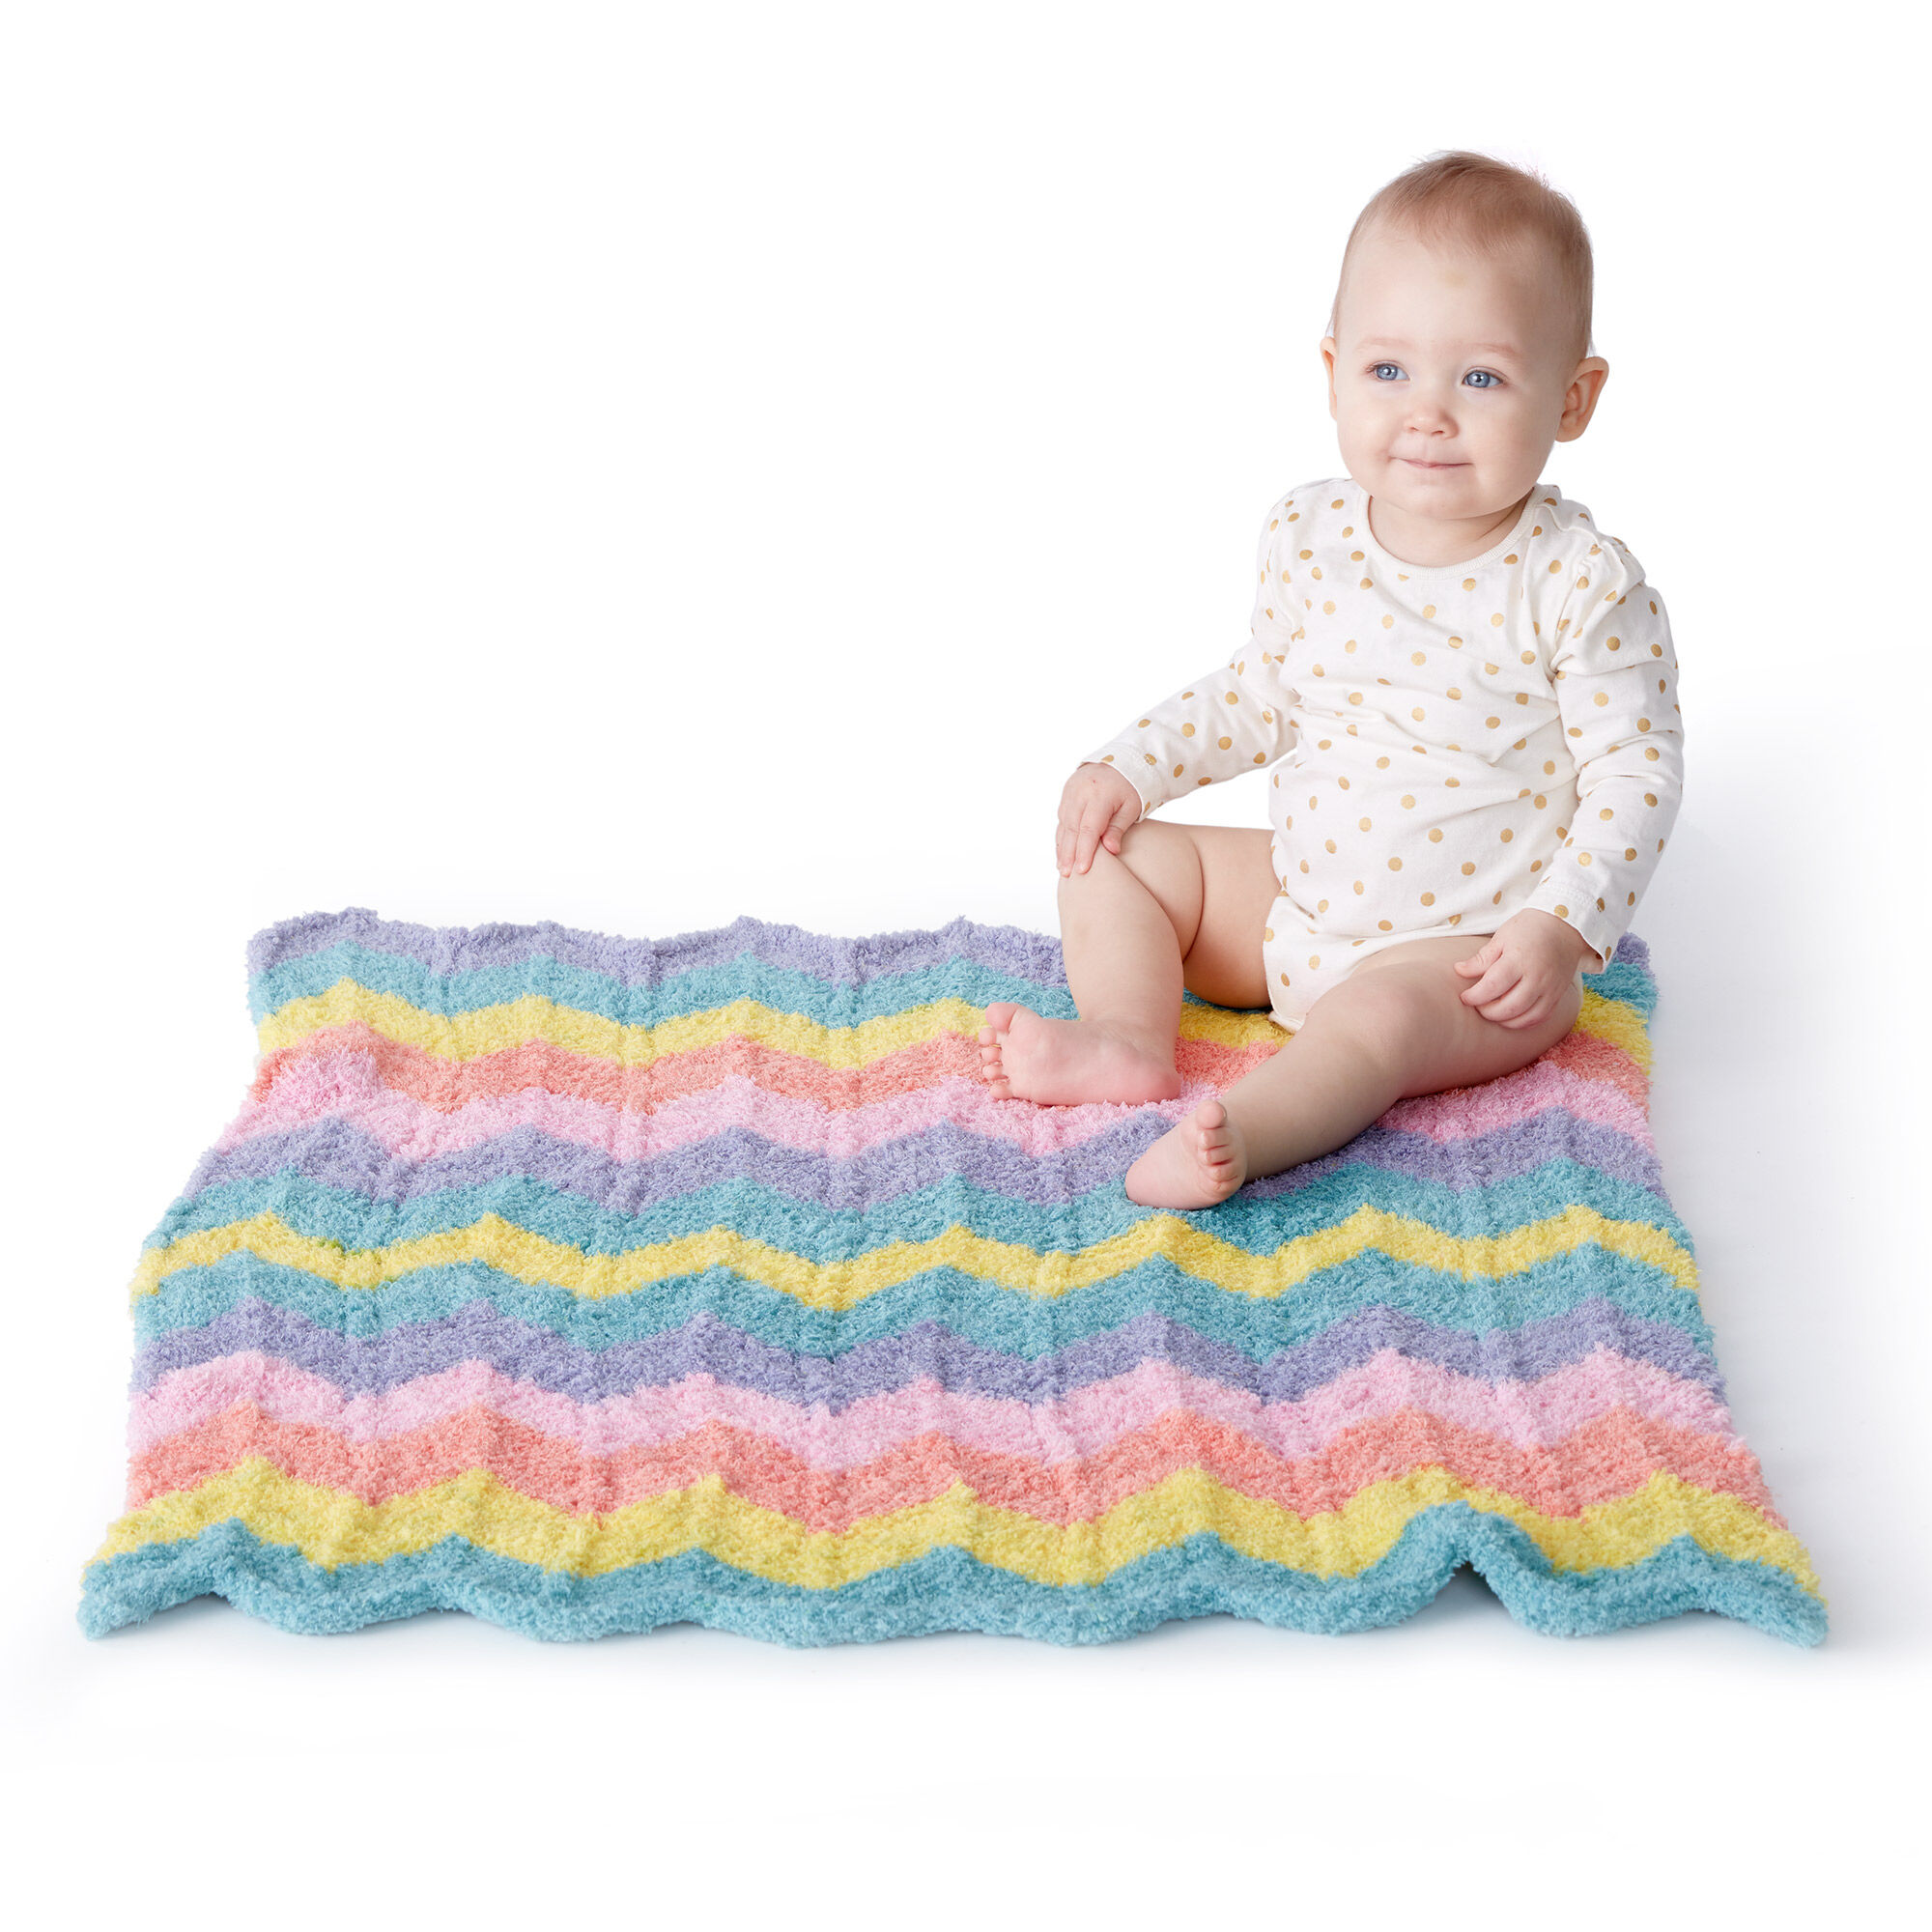 Bernat New Wave Knit Baby Blanket Pattern | Yarnspirations ...